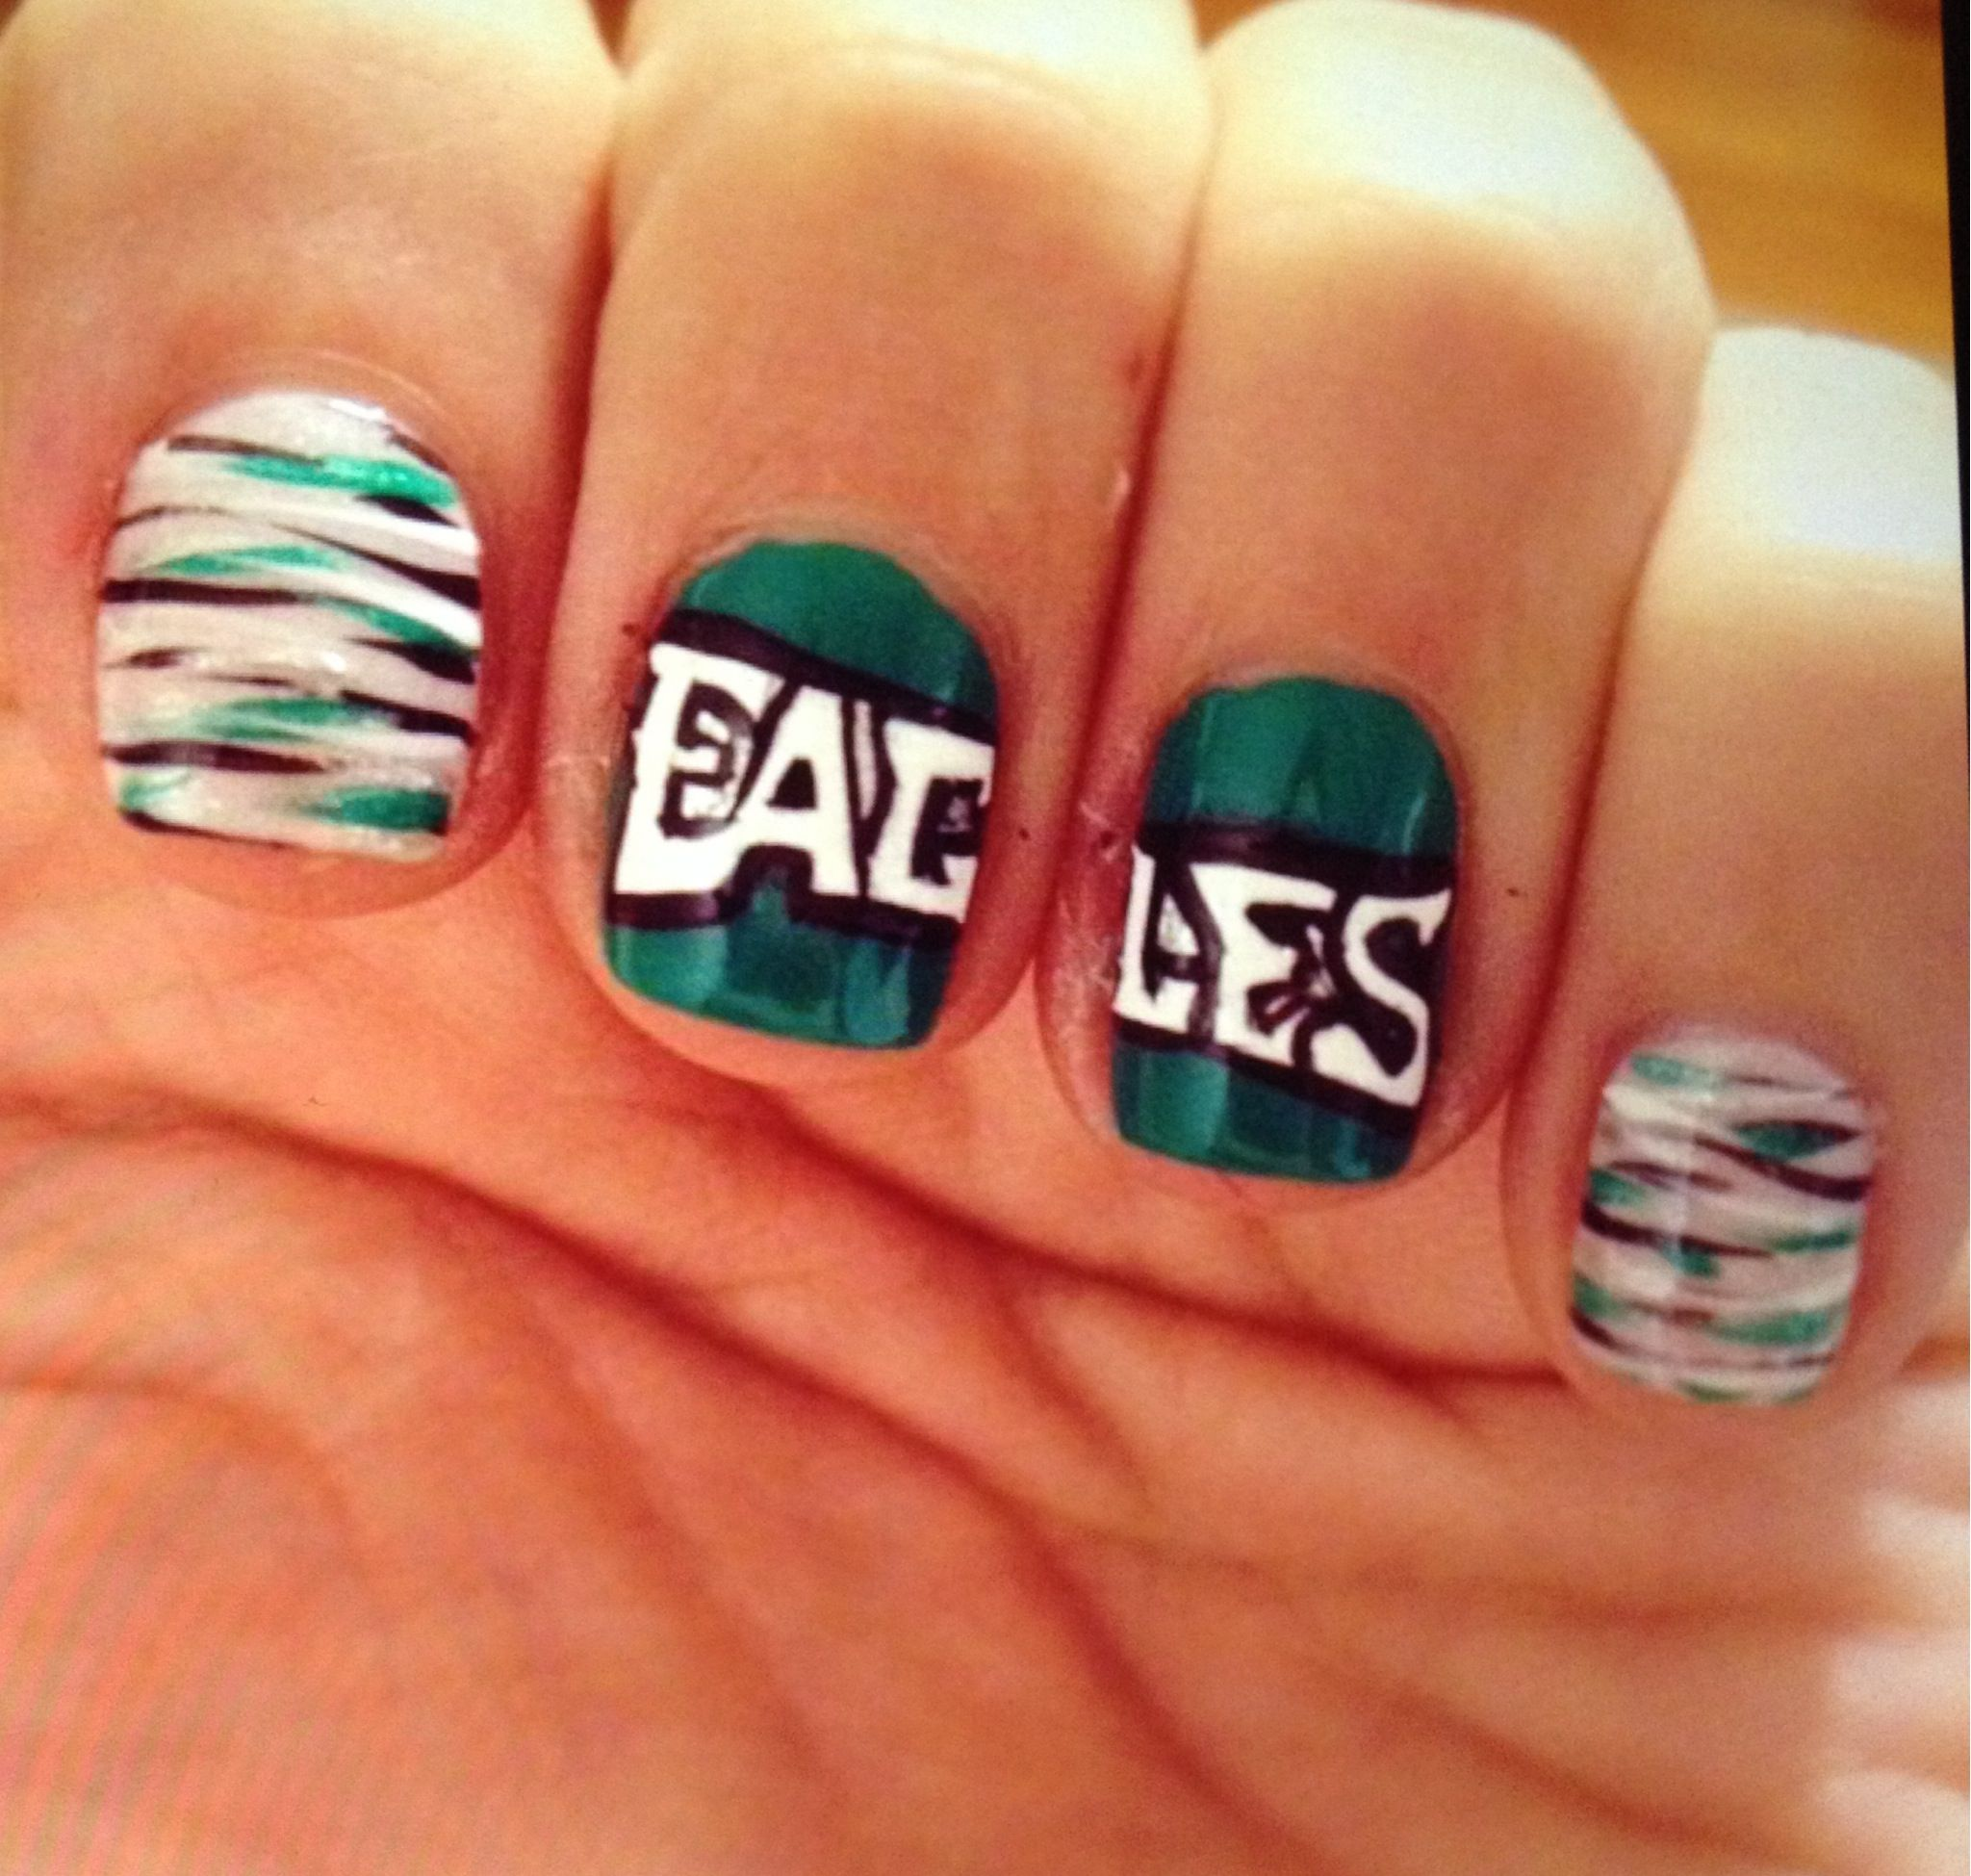 Eagles football green black white silver nails | Nails | Pinterest ...